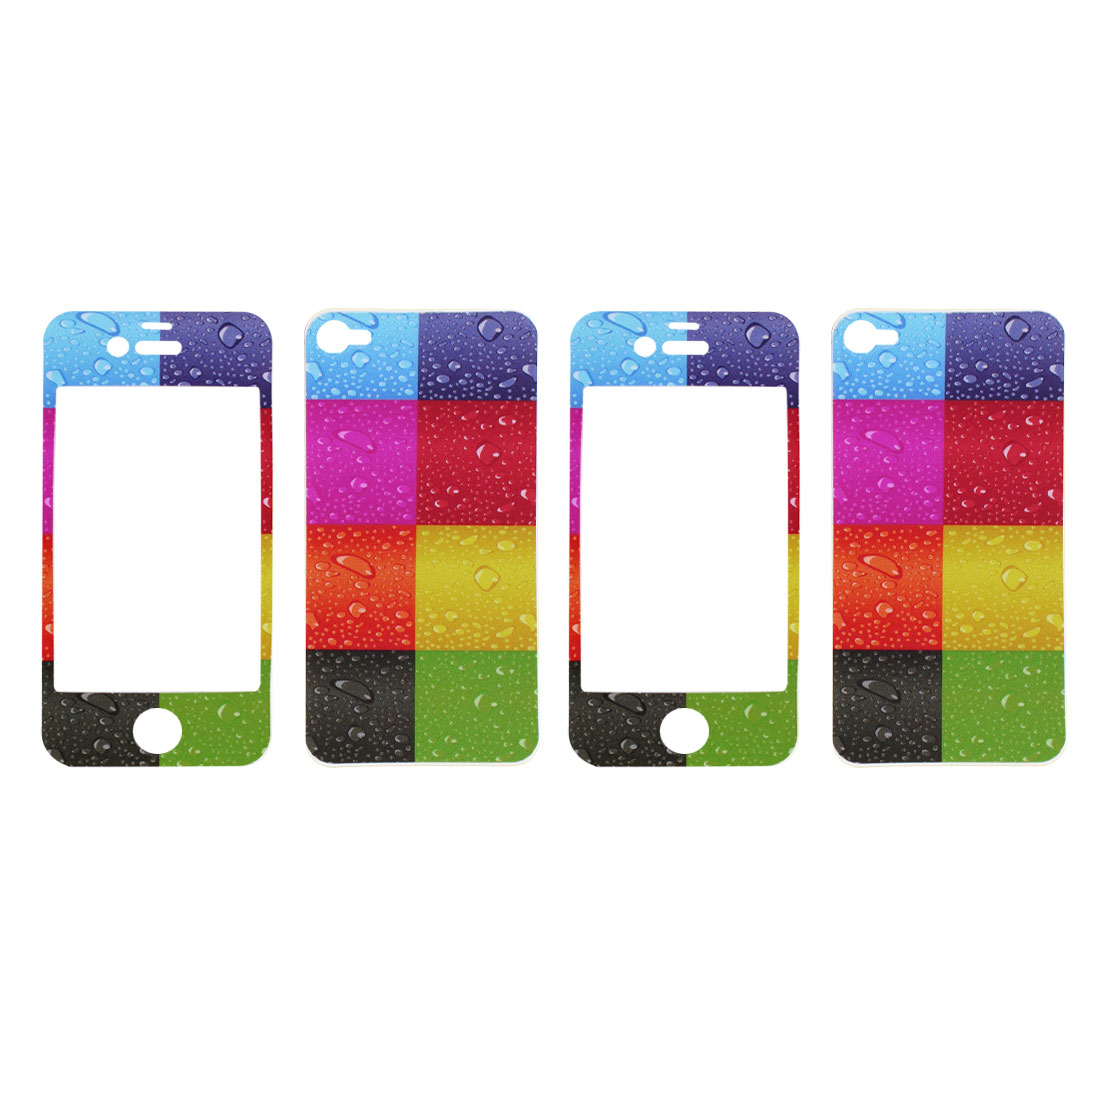 Rain Drop Pattern Vinyl Front Back Decal Sticker Colors 2 Pcs for iPhone 4 4G 4S 4GS